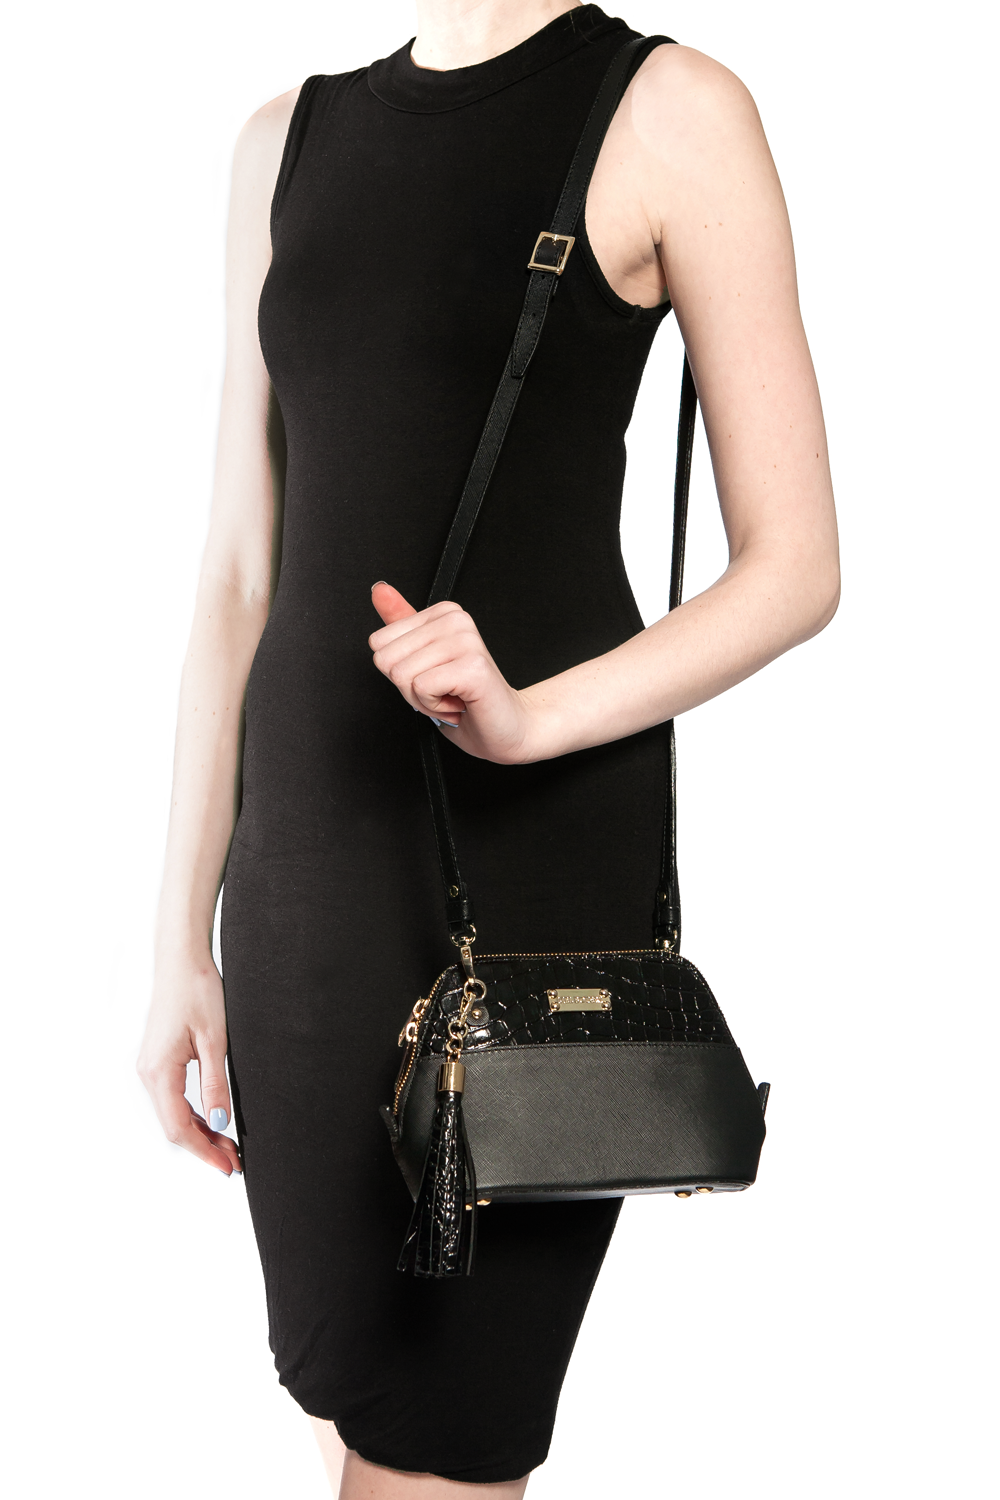 Mel Boteri 'Watson Mini' Cross-Body & Clutch Black Leather Bag | Model View